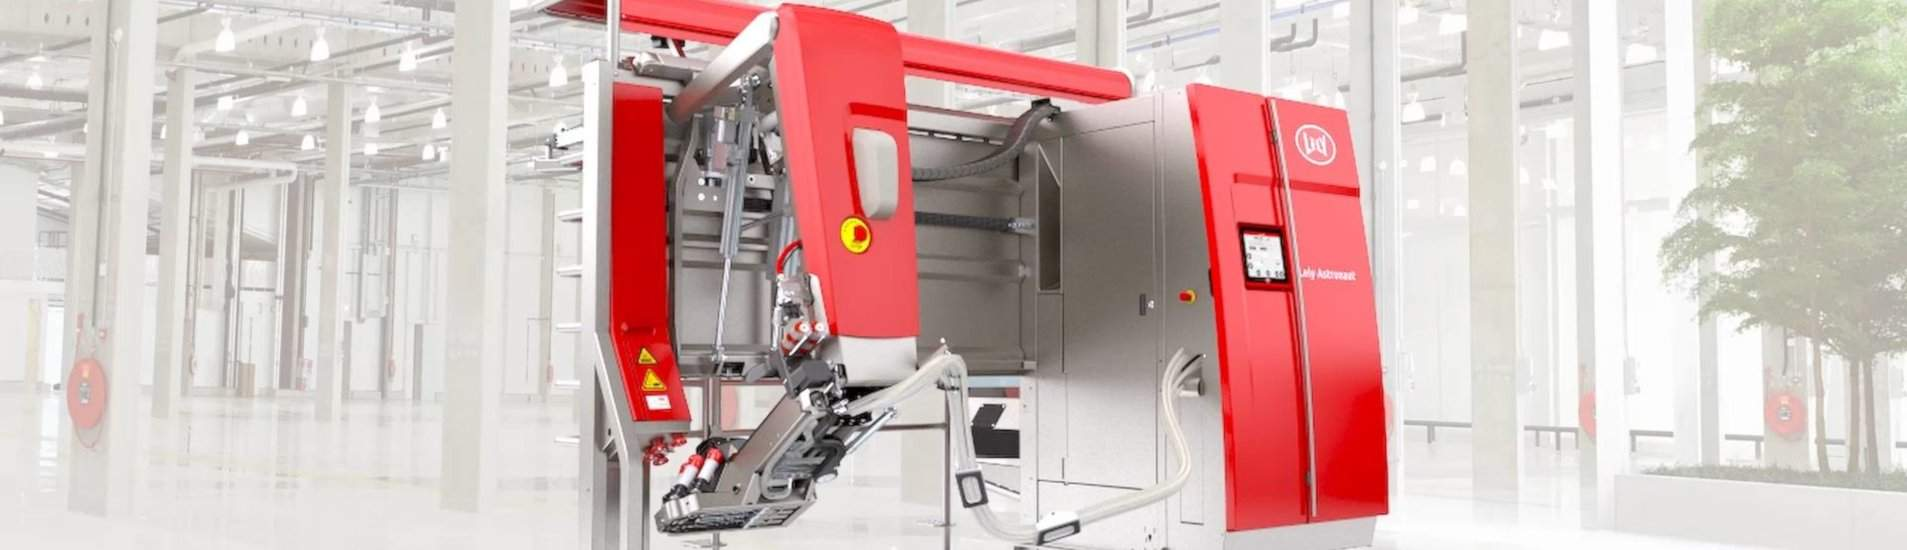 Lely Automatic Milking Machines